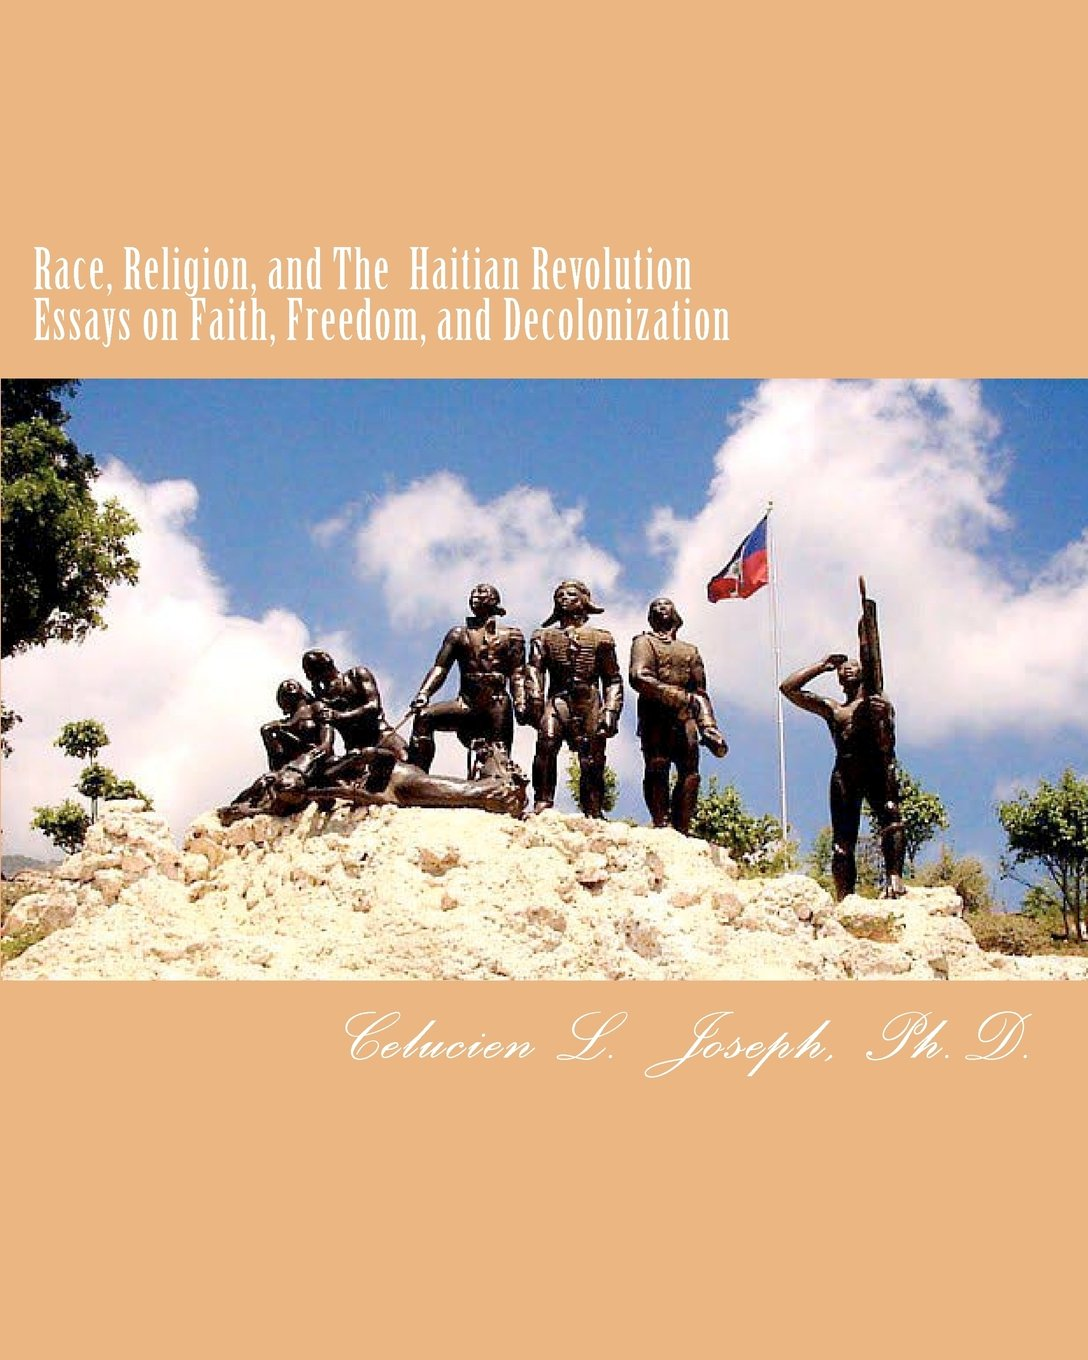 race religion and the an revolution essays on faith race religion and the an revolution essays on faith dom and decolonization celucien l joseph 9781481859110 com books